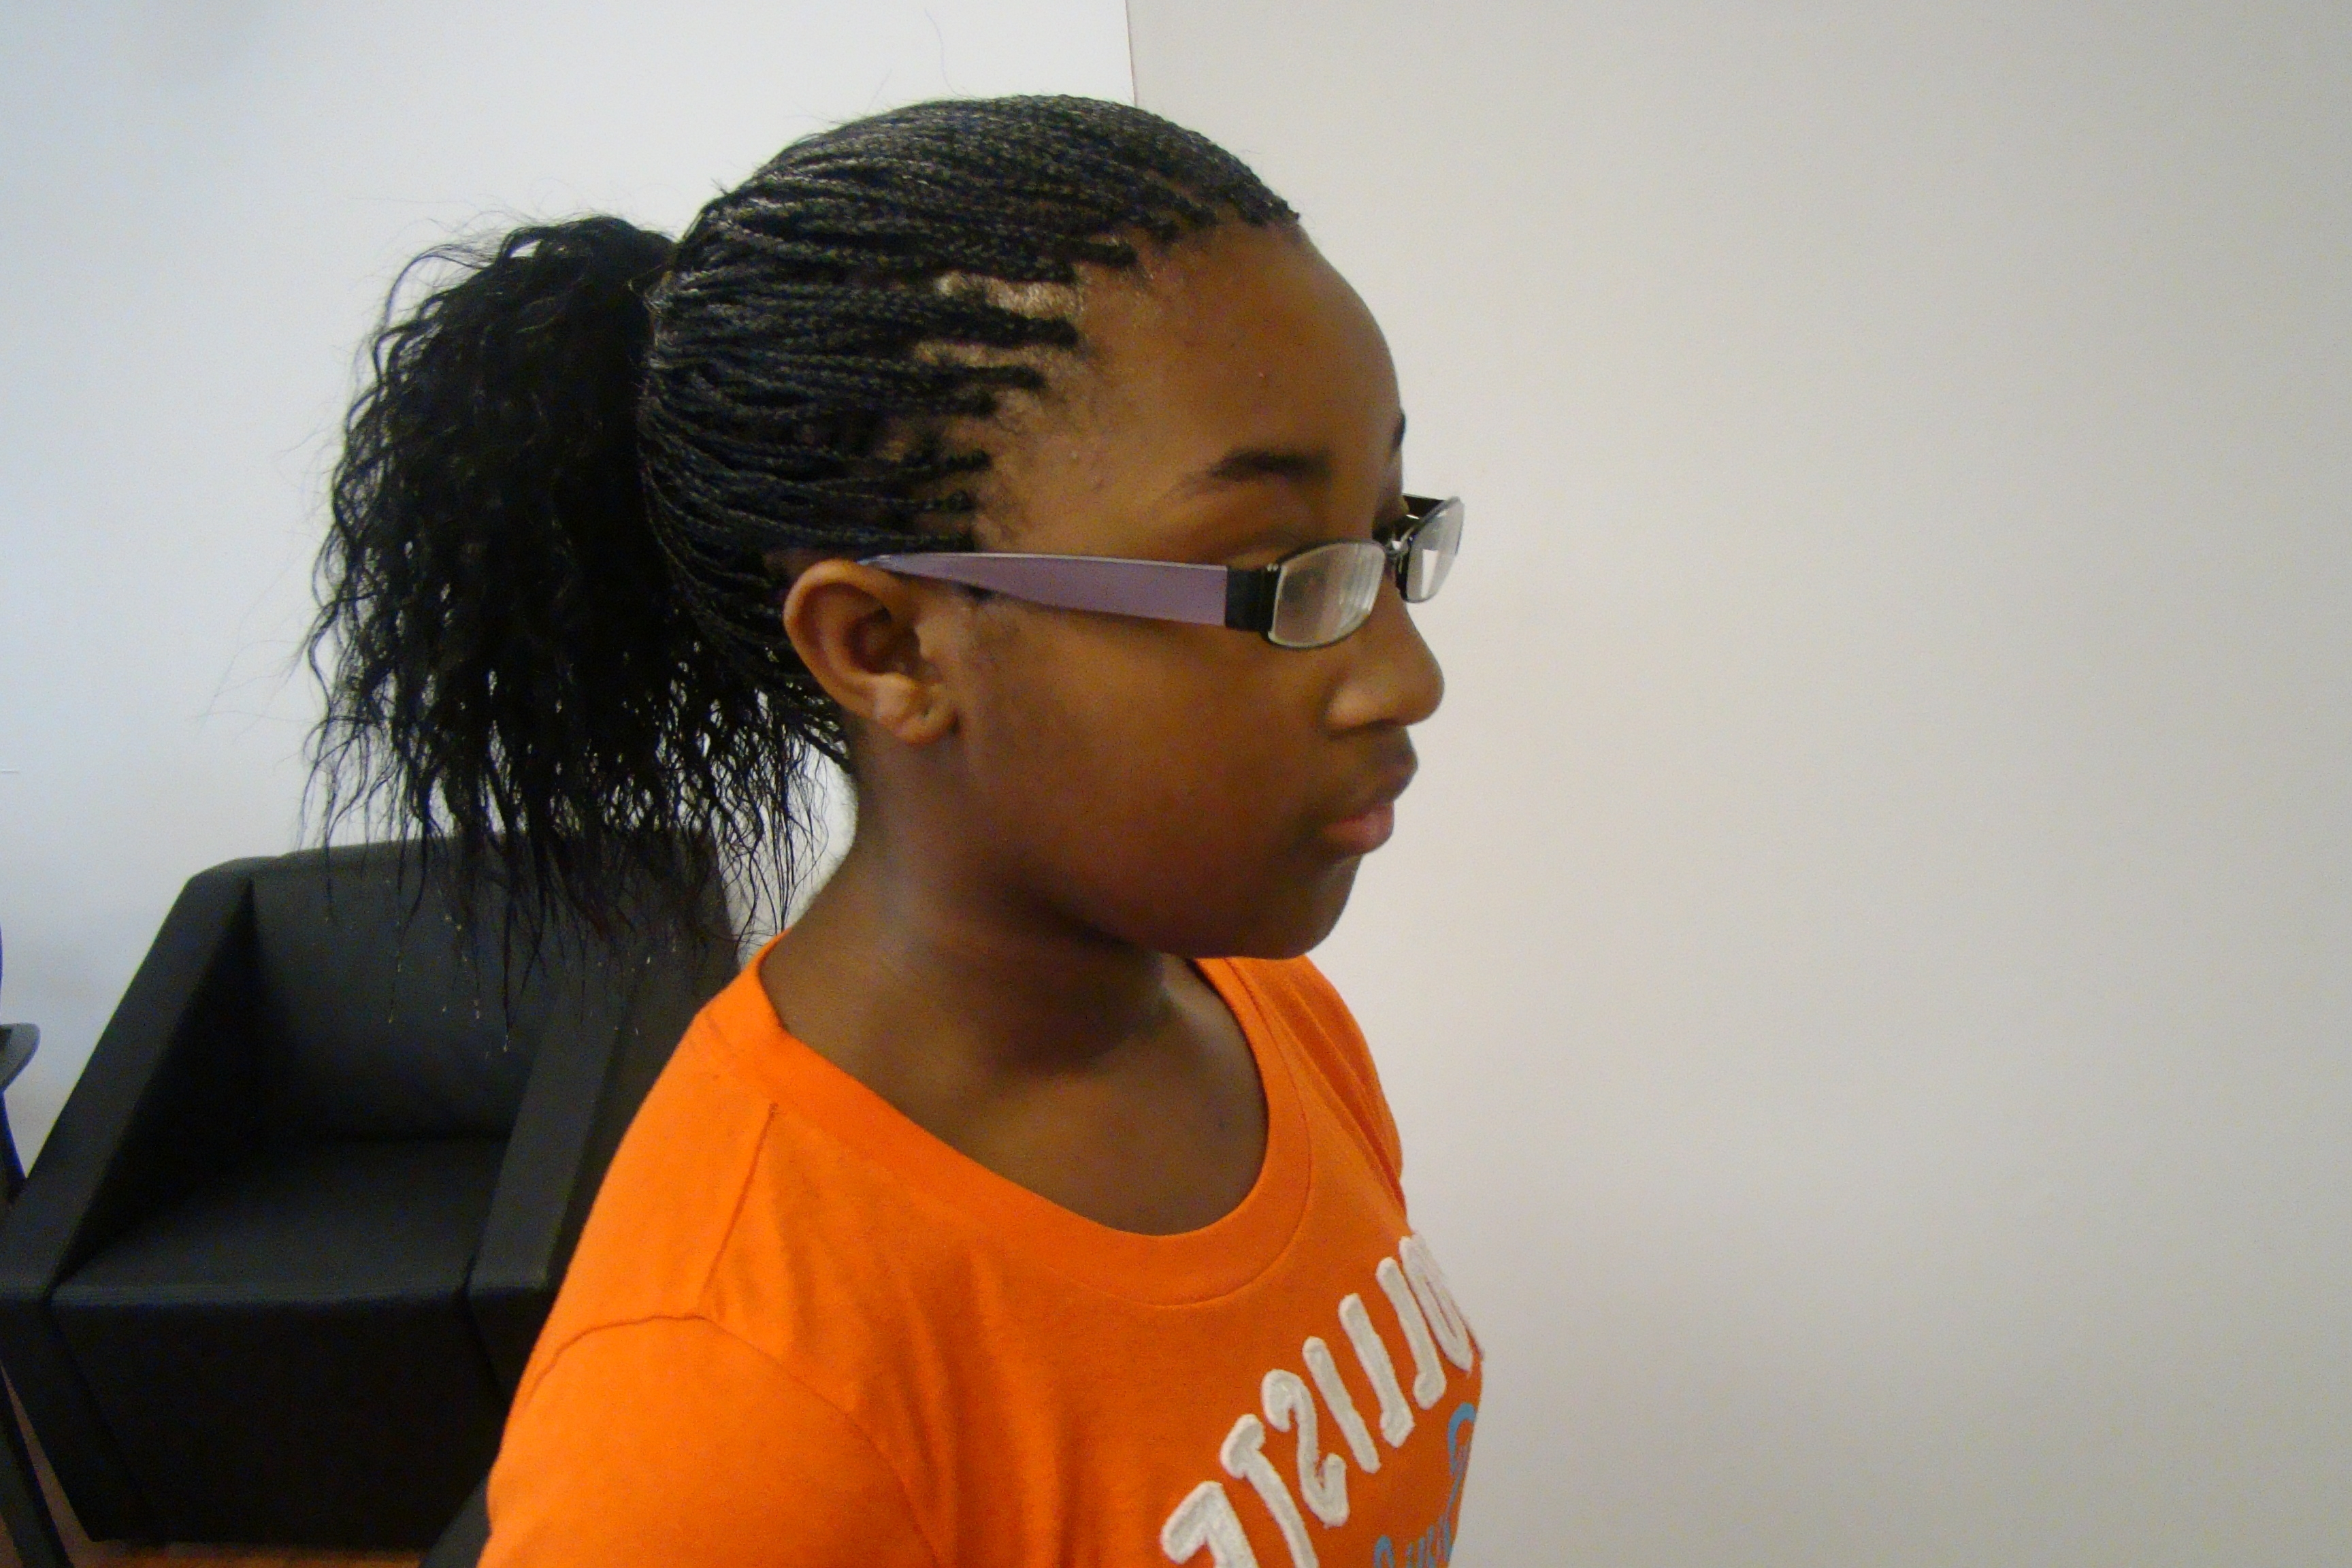 Senegalese Twists (View 19 of 20)